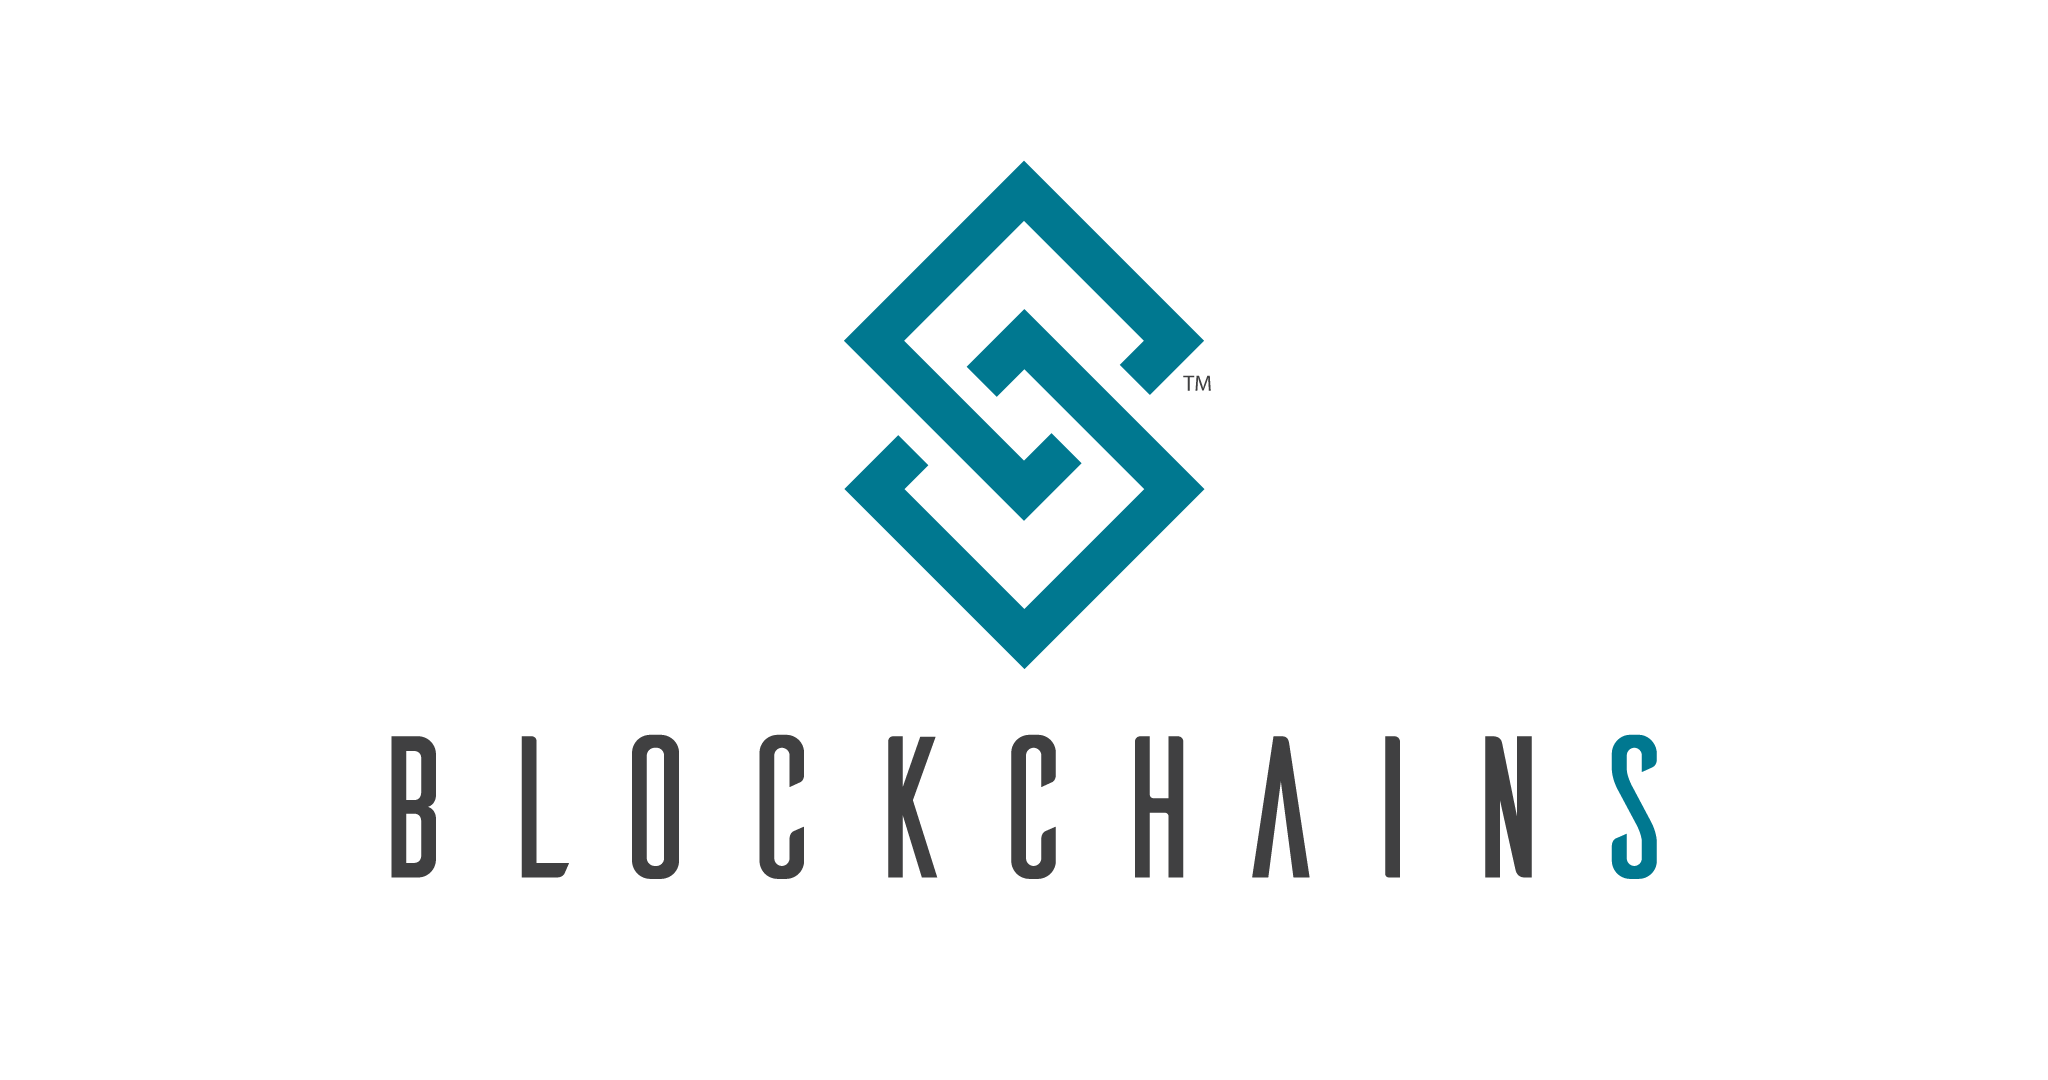 Blockchain Logo - Blockchains: Incubating ideas using Ethereum and blockchain technology